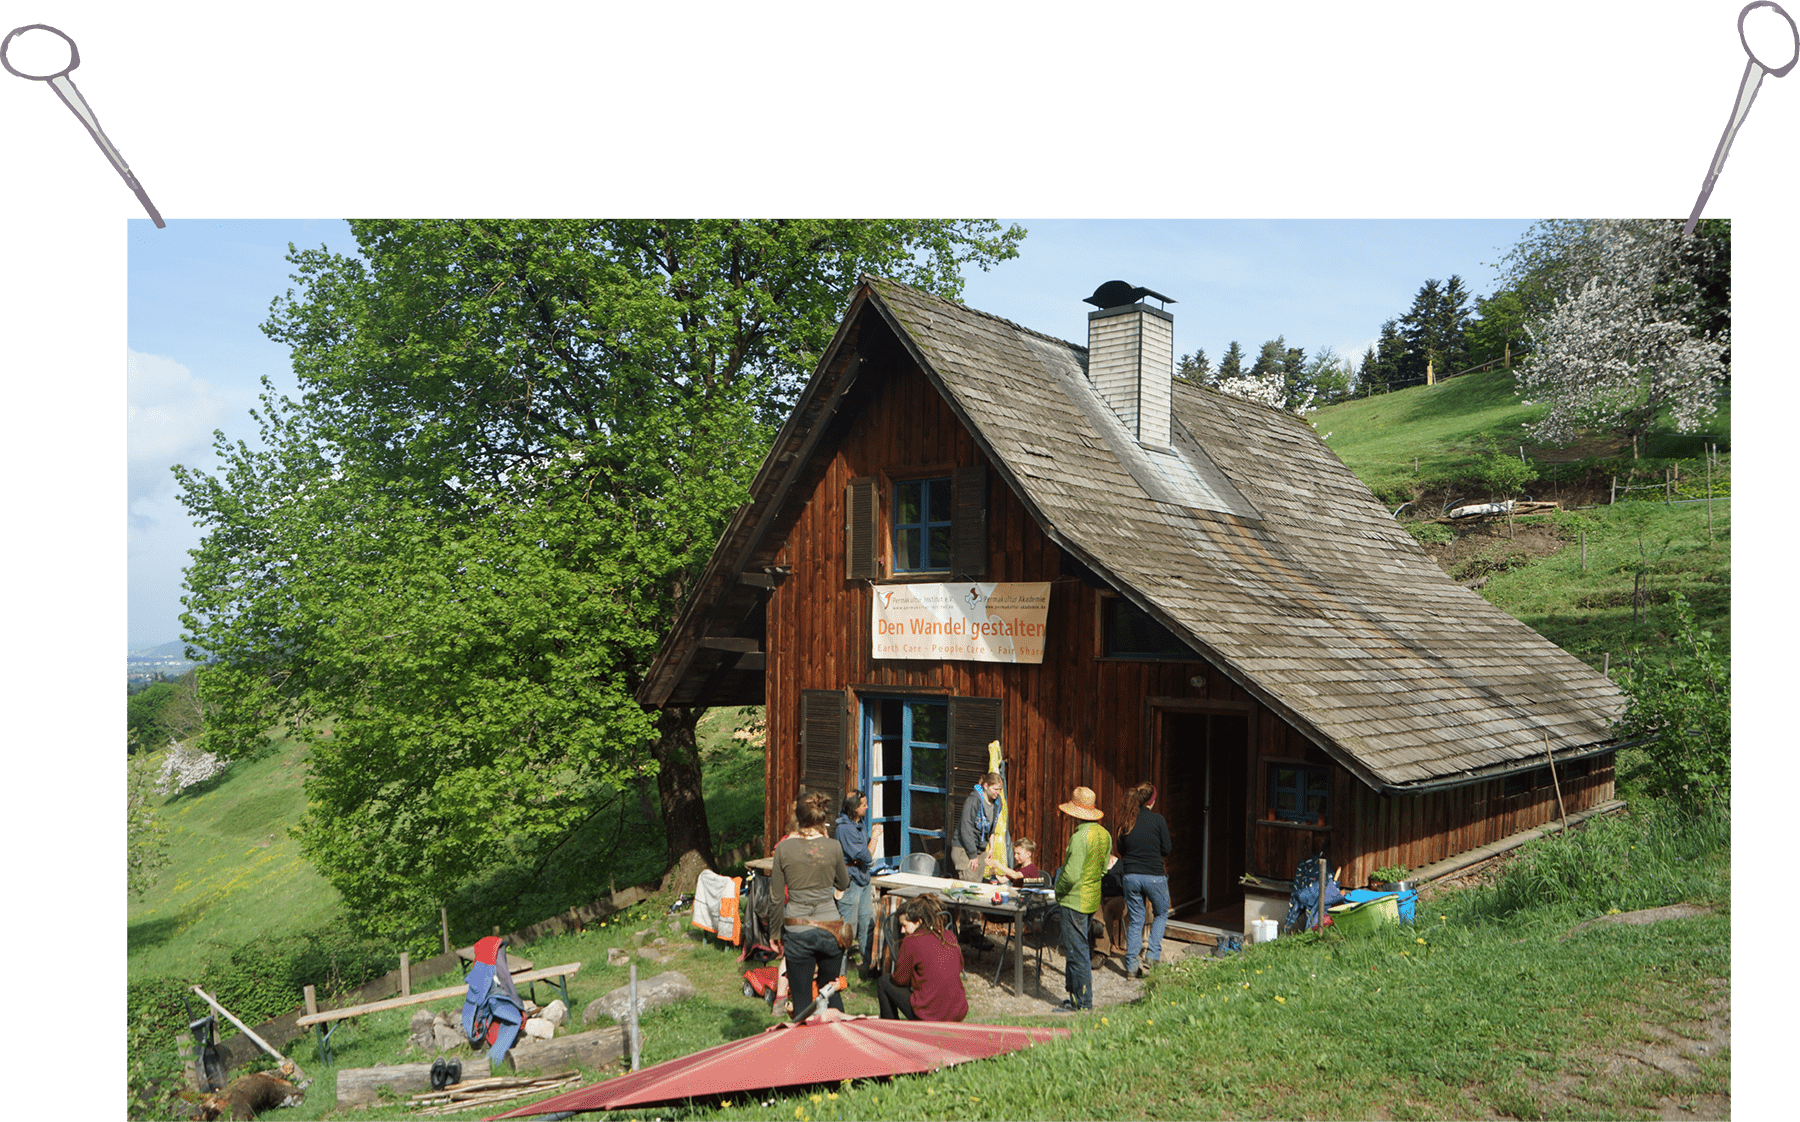 The Häuslemaierhof is a farm located in the municipality       of Buchenbach not far from Freiburg.